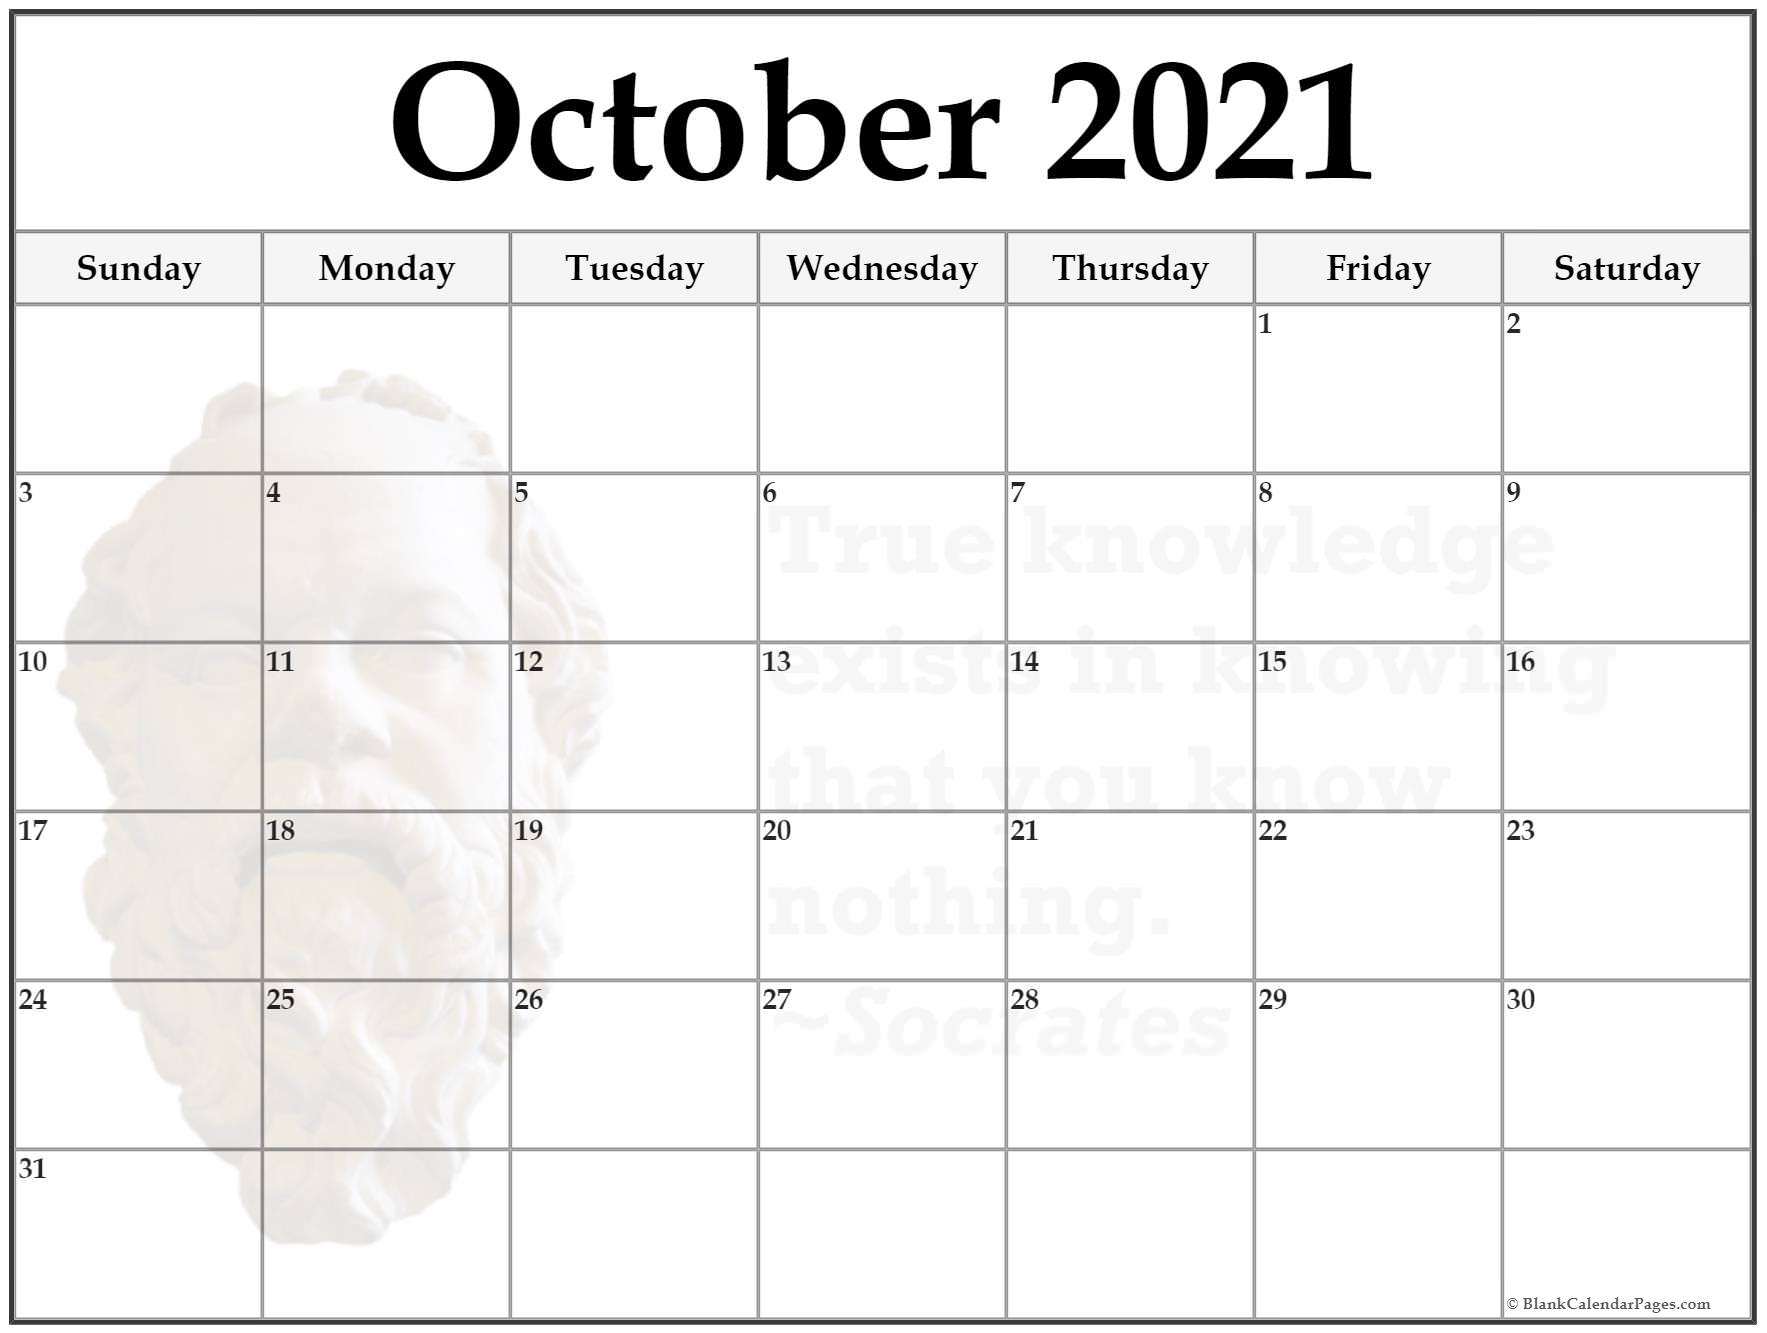 October 2020 monthly quote calendar template. True knowledge exists in knowing that you know nothing. ~Socrates